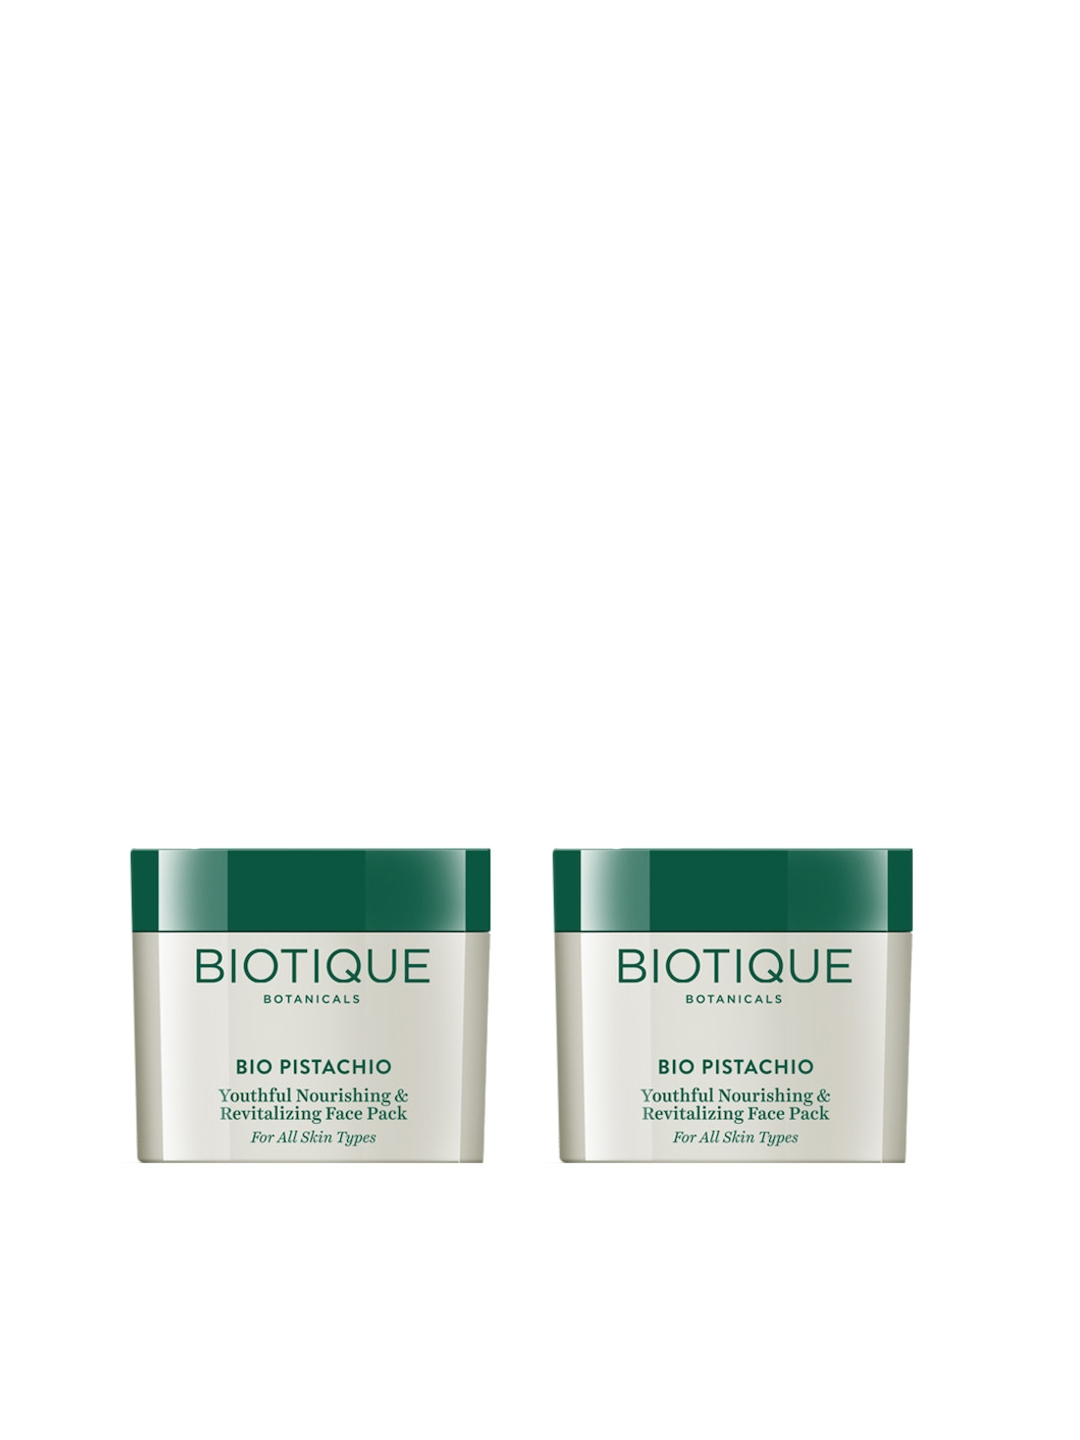 Biotique Set of 2 Bio Pistachio Youthful Nourishing   Revitalizing Face Packs